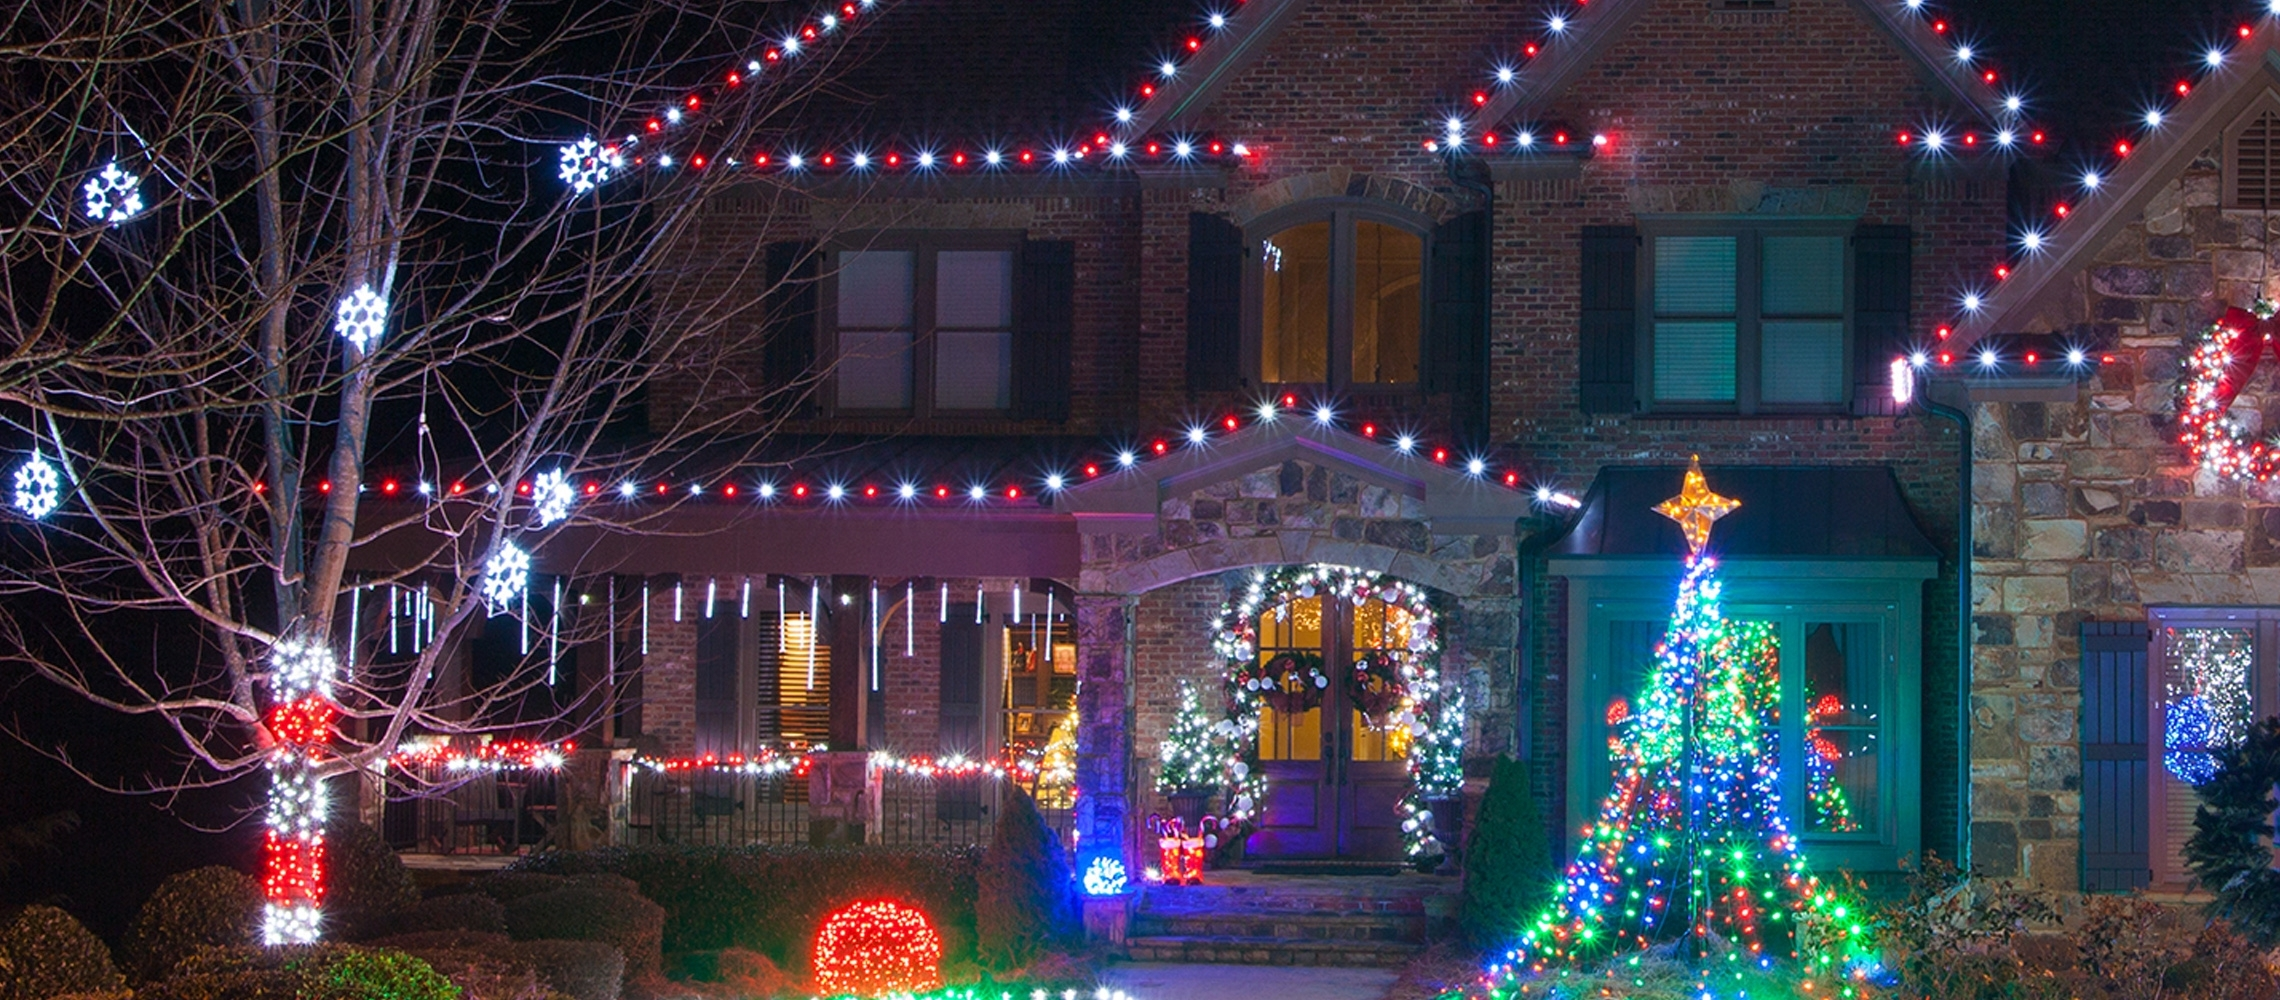 Outdoor Christmas Lights Ideas For The Roof throughout Outdoor Lanterns for Christmas (Image 14 of 20)